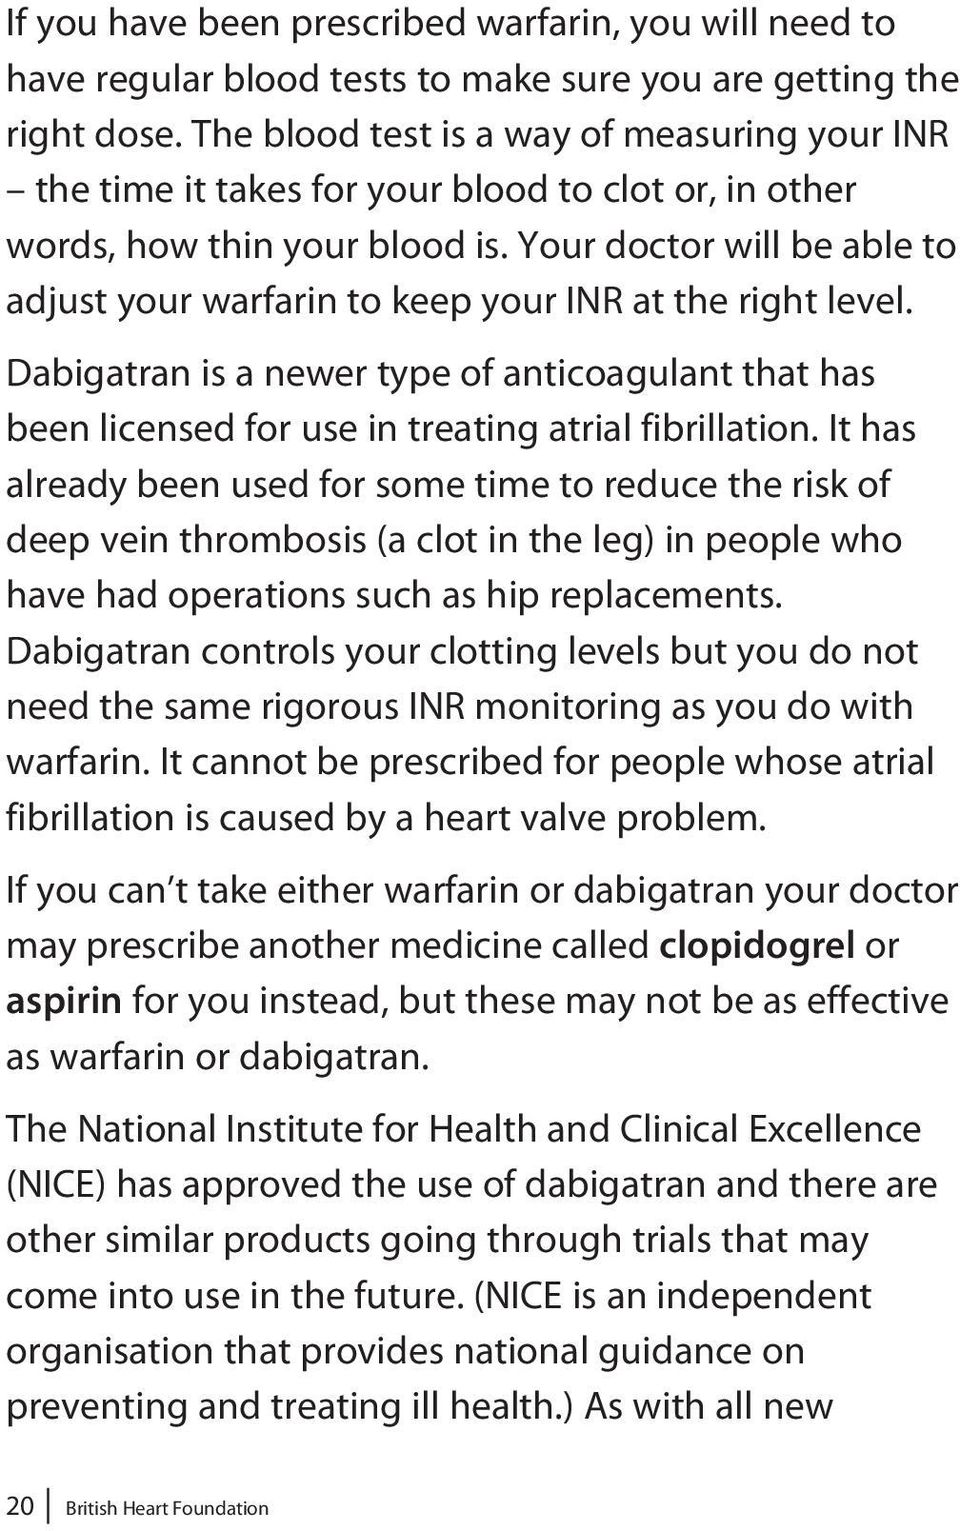 Your doctor will be able to adjust your warfarin to keep your INR at the right level. Dabigatran is a newer type of anticoagulant that has been licensed for use in treating atrial fibrillation.